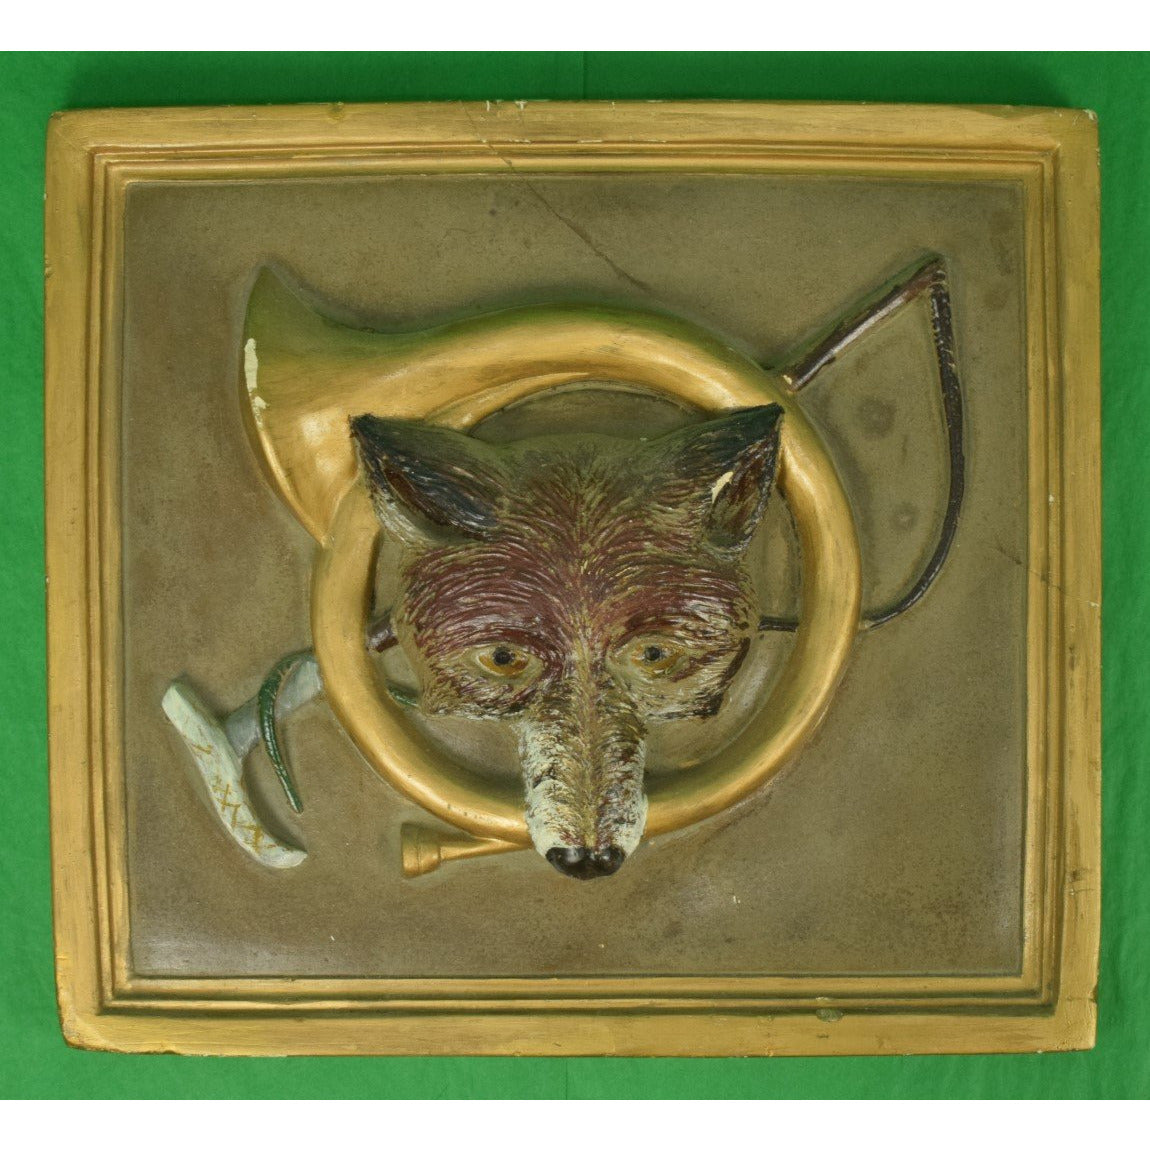 FoxHead/ Hunting Horn & Crop Ceramic Relief